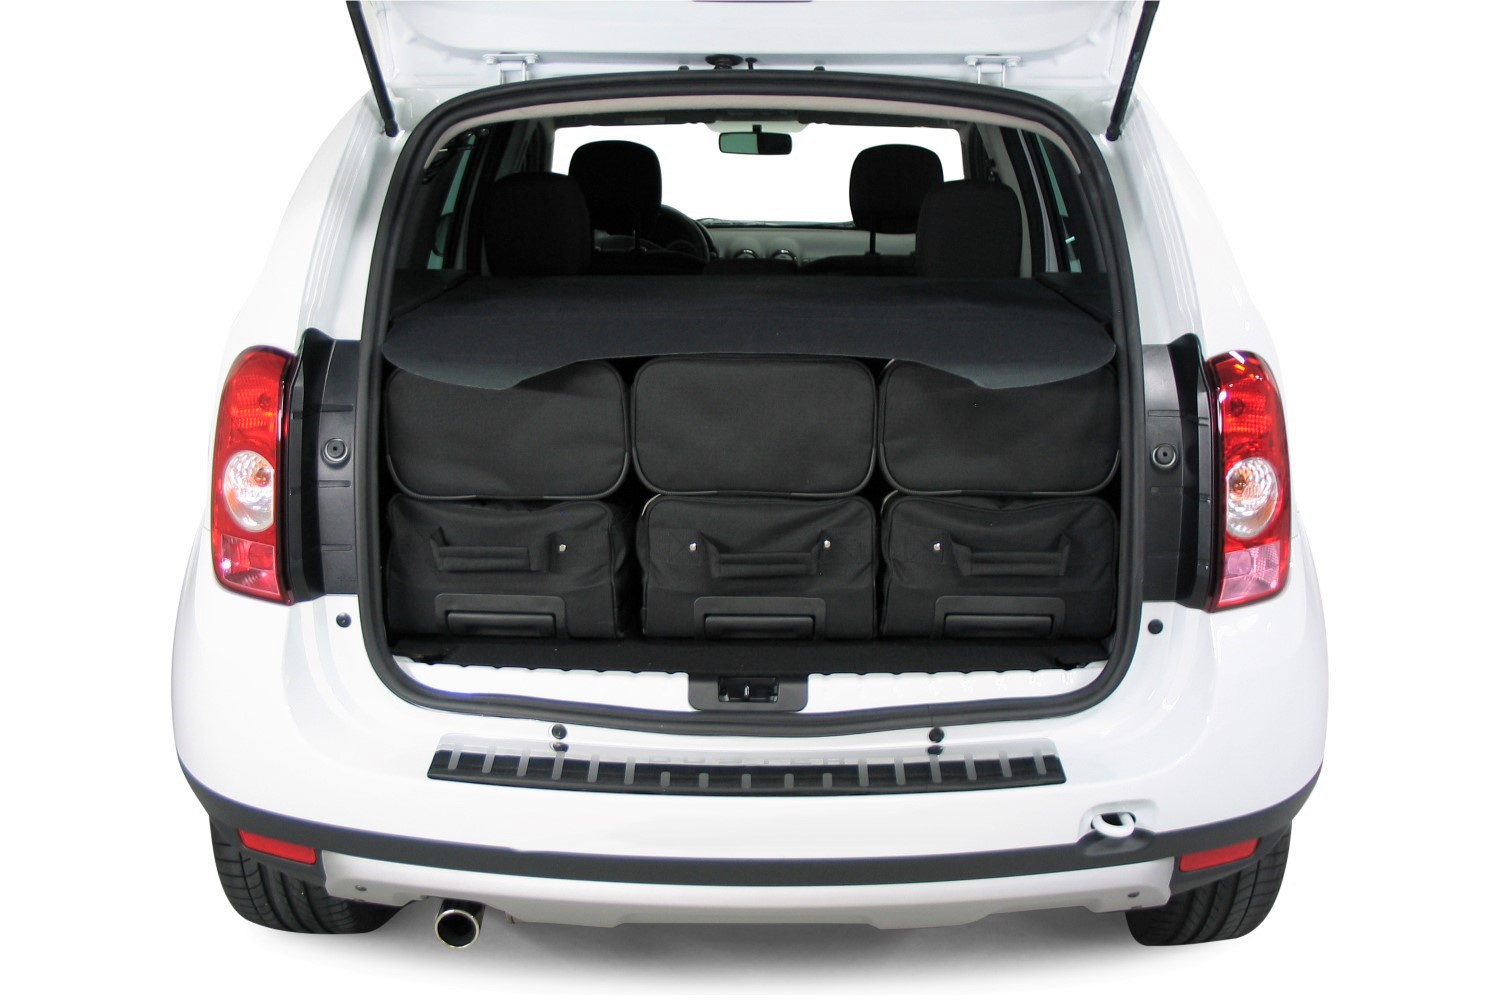 duster dacia duster 1 4x4 2010 2017 car bags travel bags. Black Bedroom Furniture Sets. Home Design Ideas